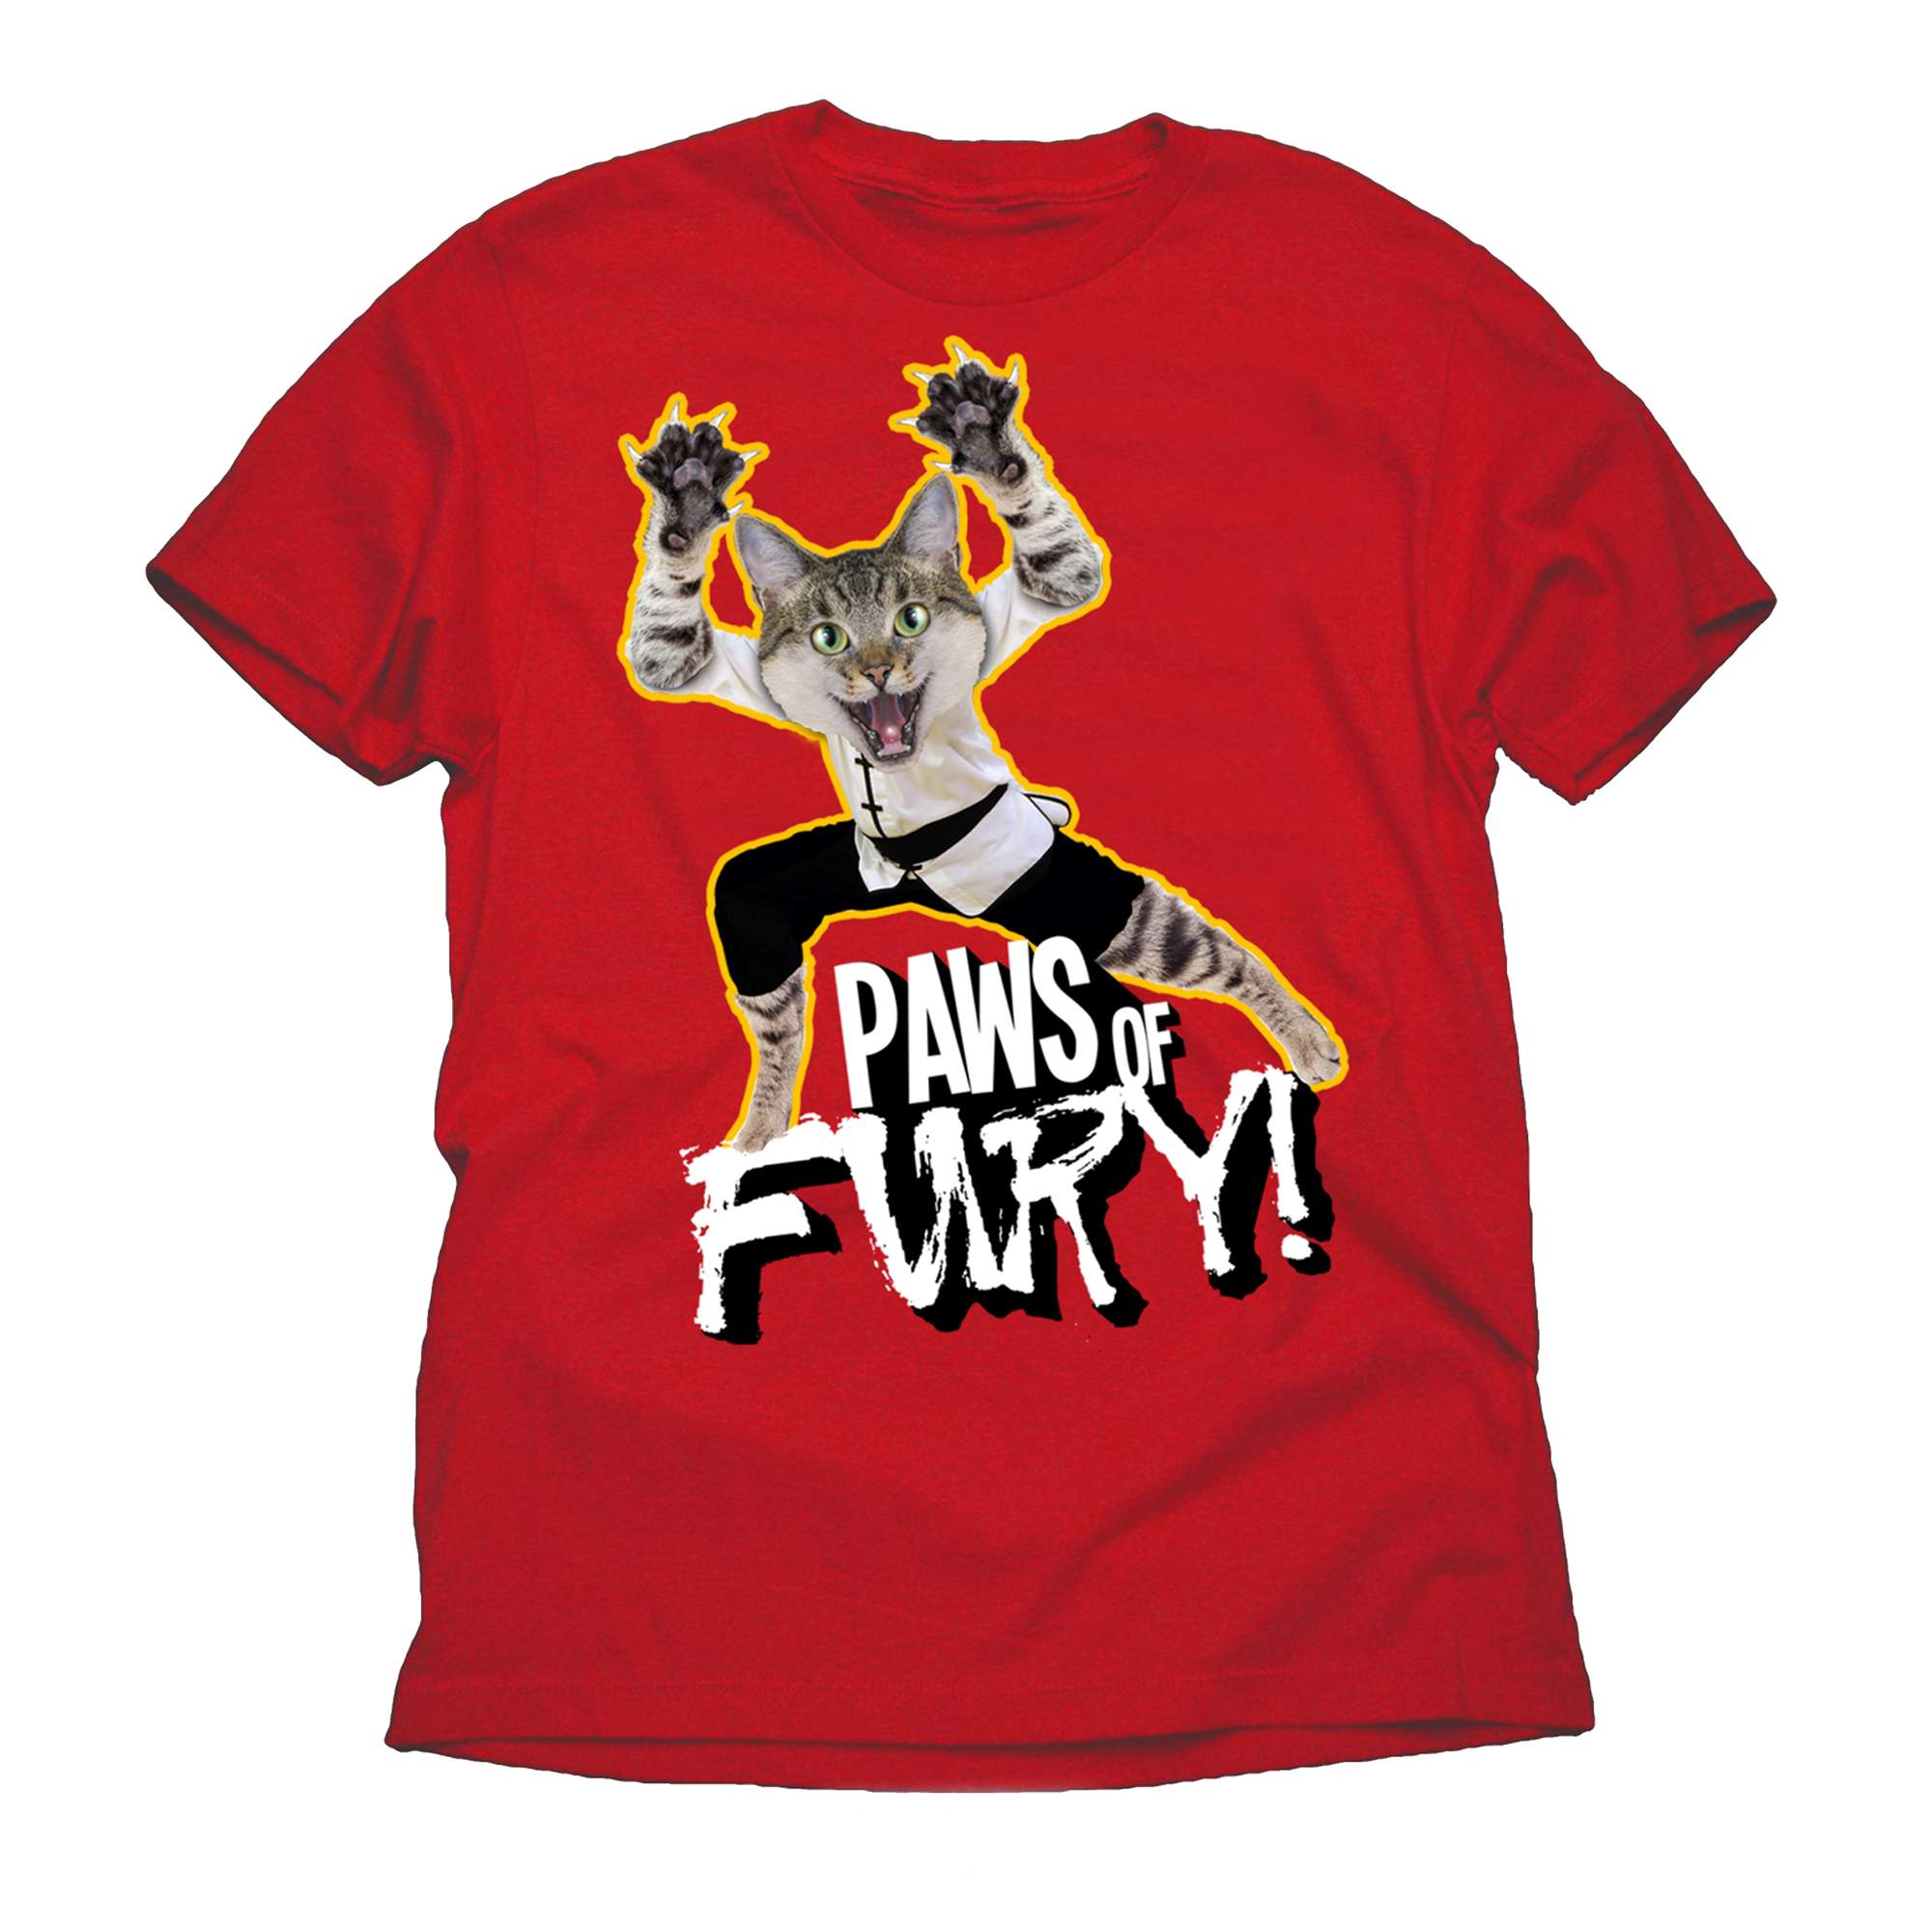 Paws of Fury Funny Cat Big Mens Graphic Red Tee Shirt